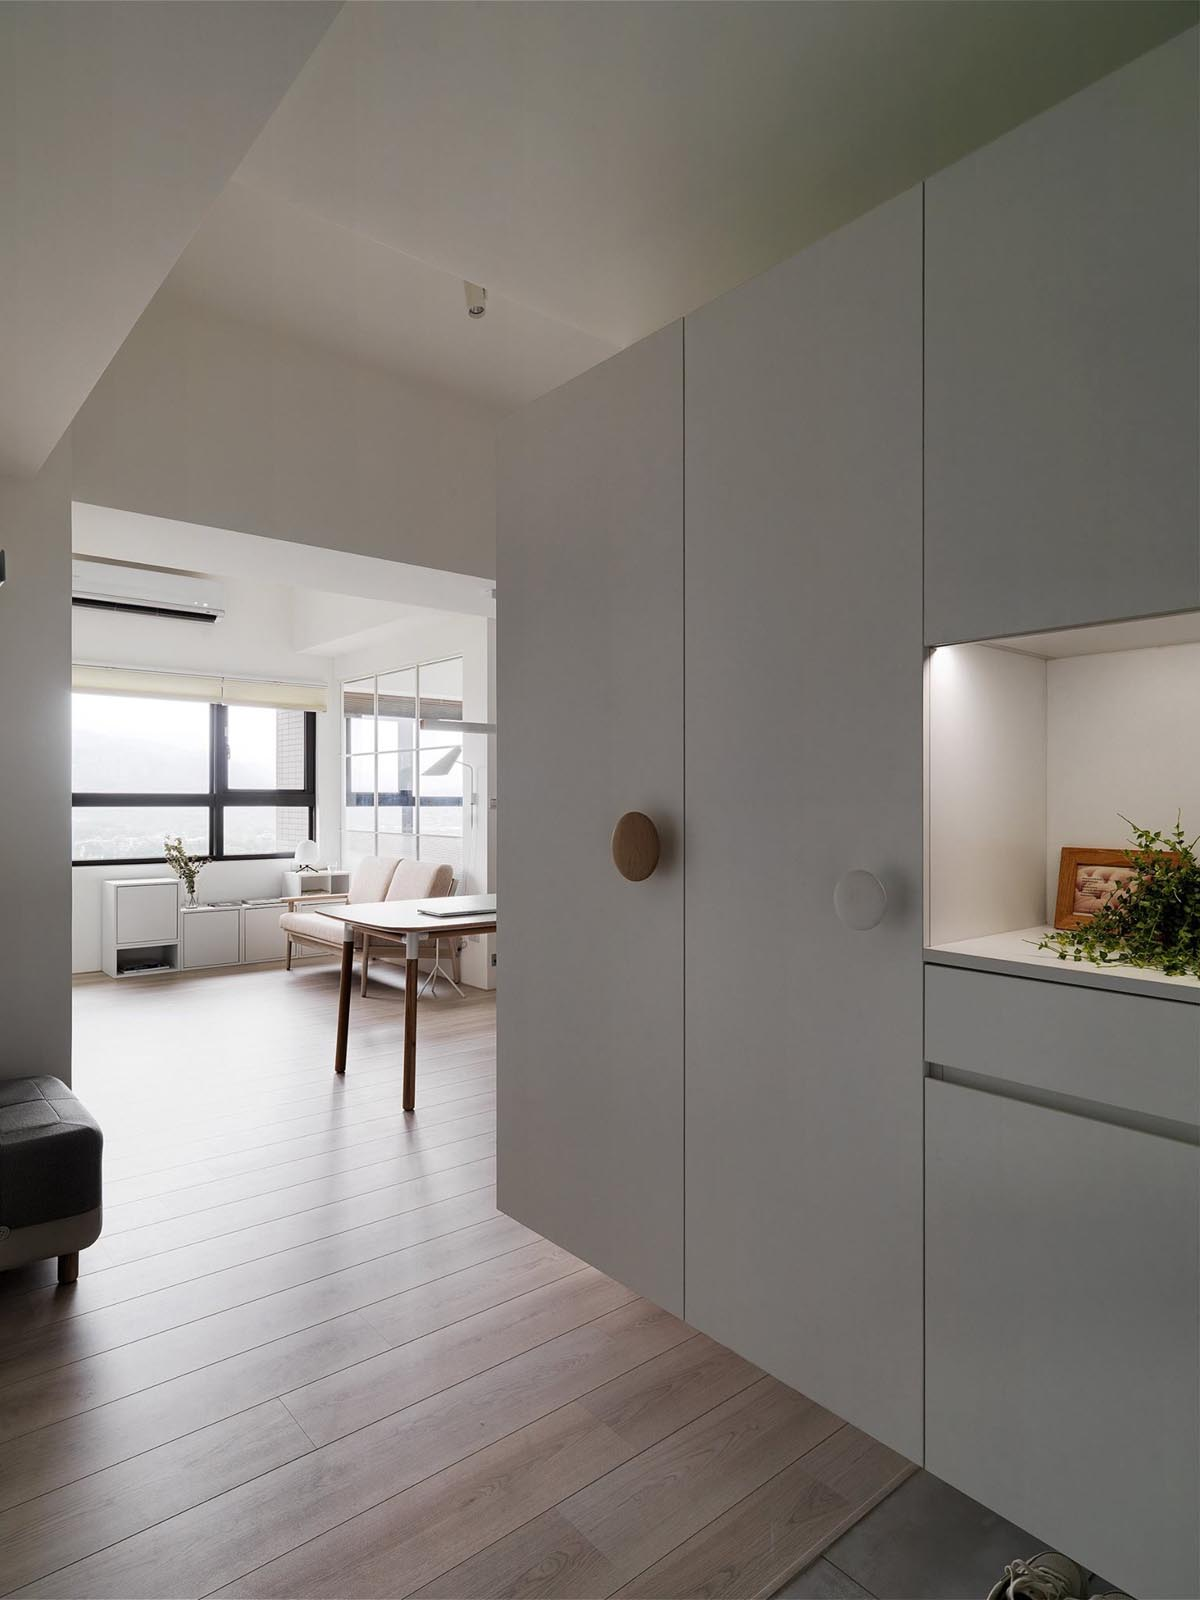 Completely White Apartment With Dominant Central Home Office images 17